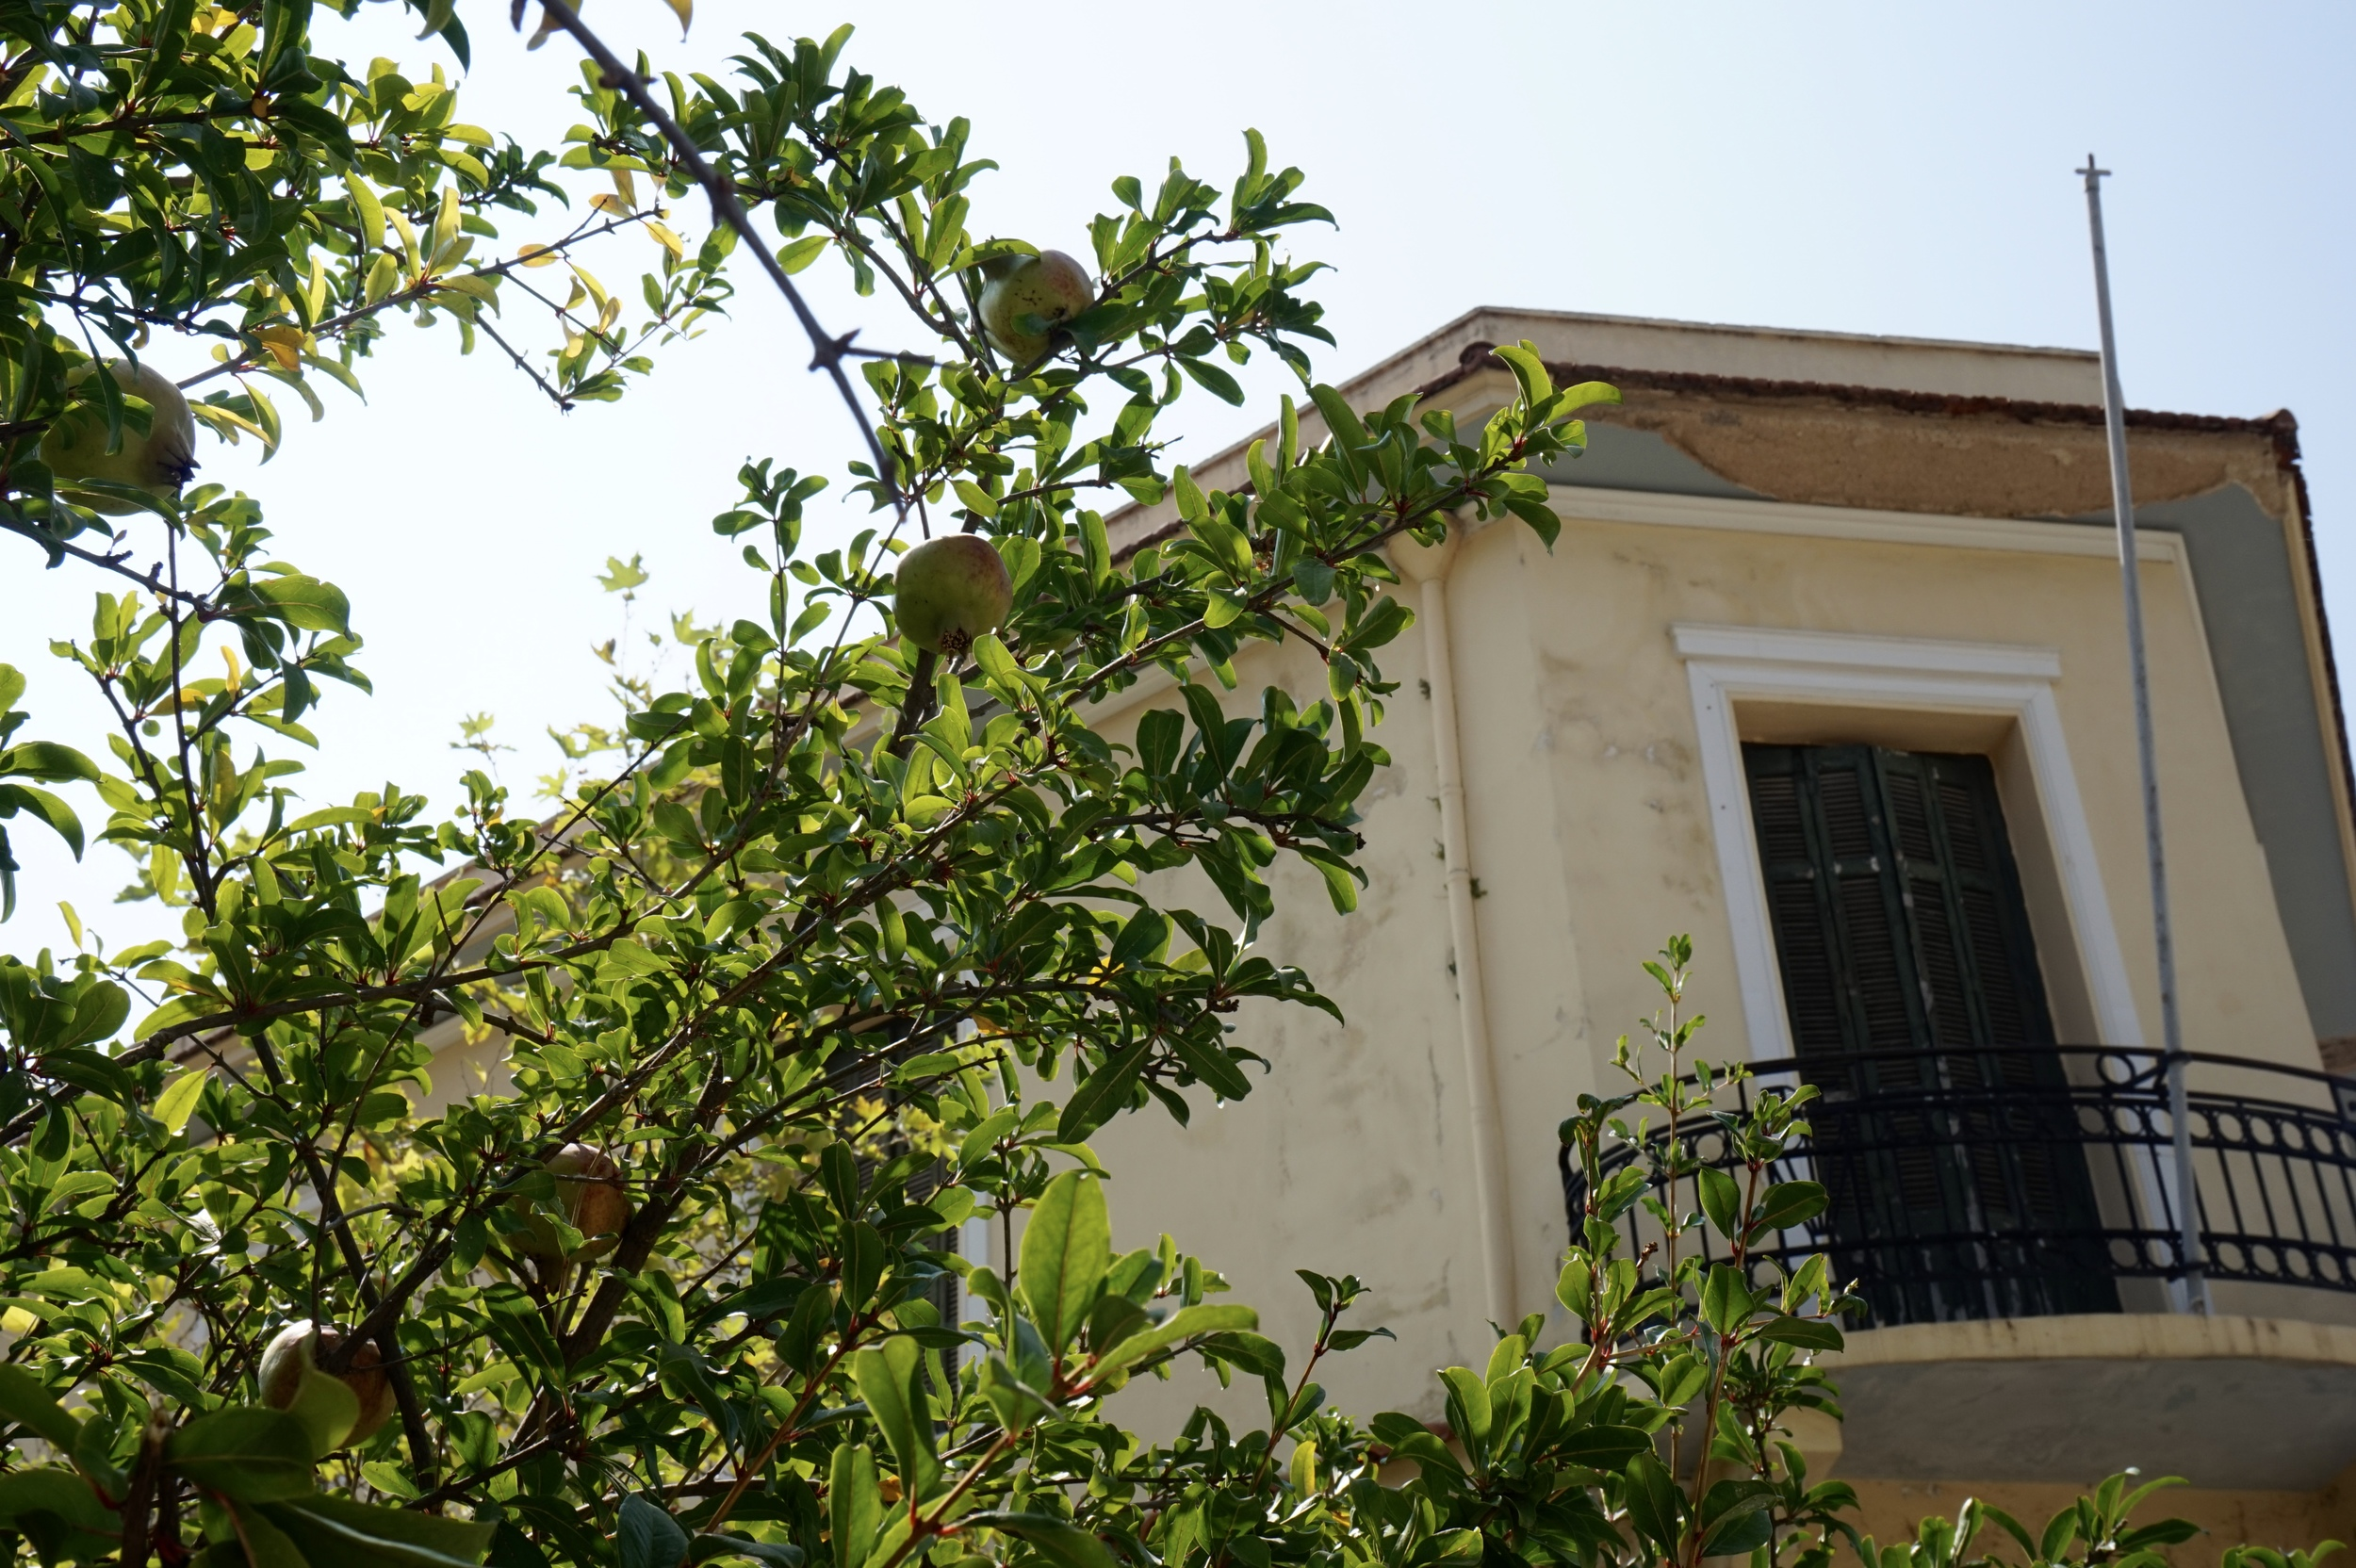 Pomegranate trees line the street leading away from the Acropolis.